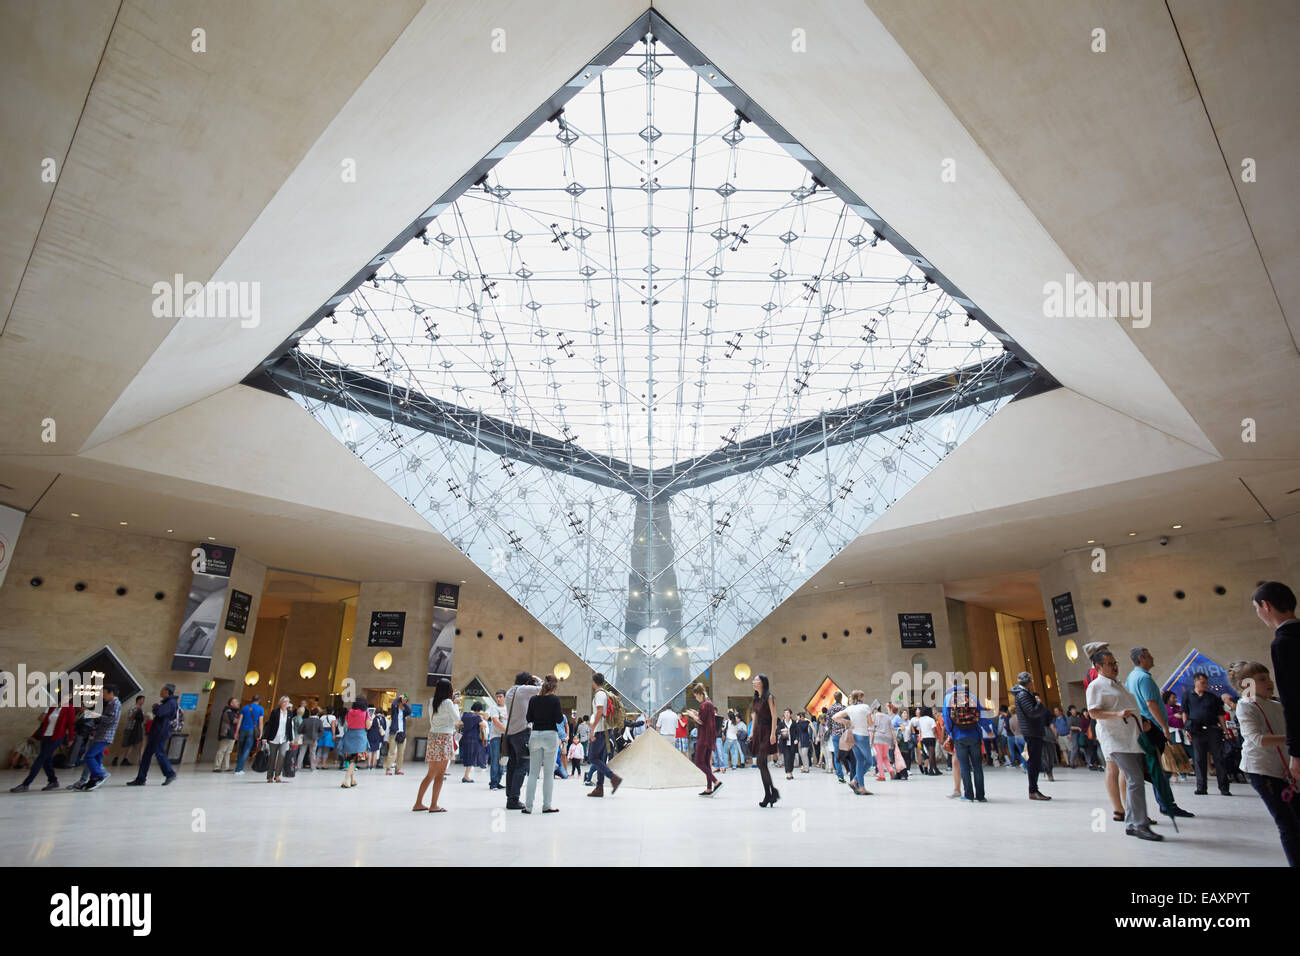 Paris, Inverted pyramid in the shopping mall 'Carrousel du Louvre' with people - Stock Image